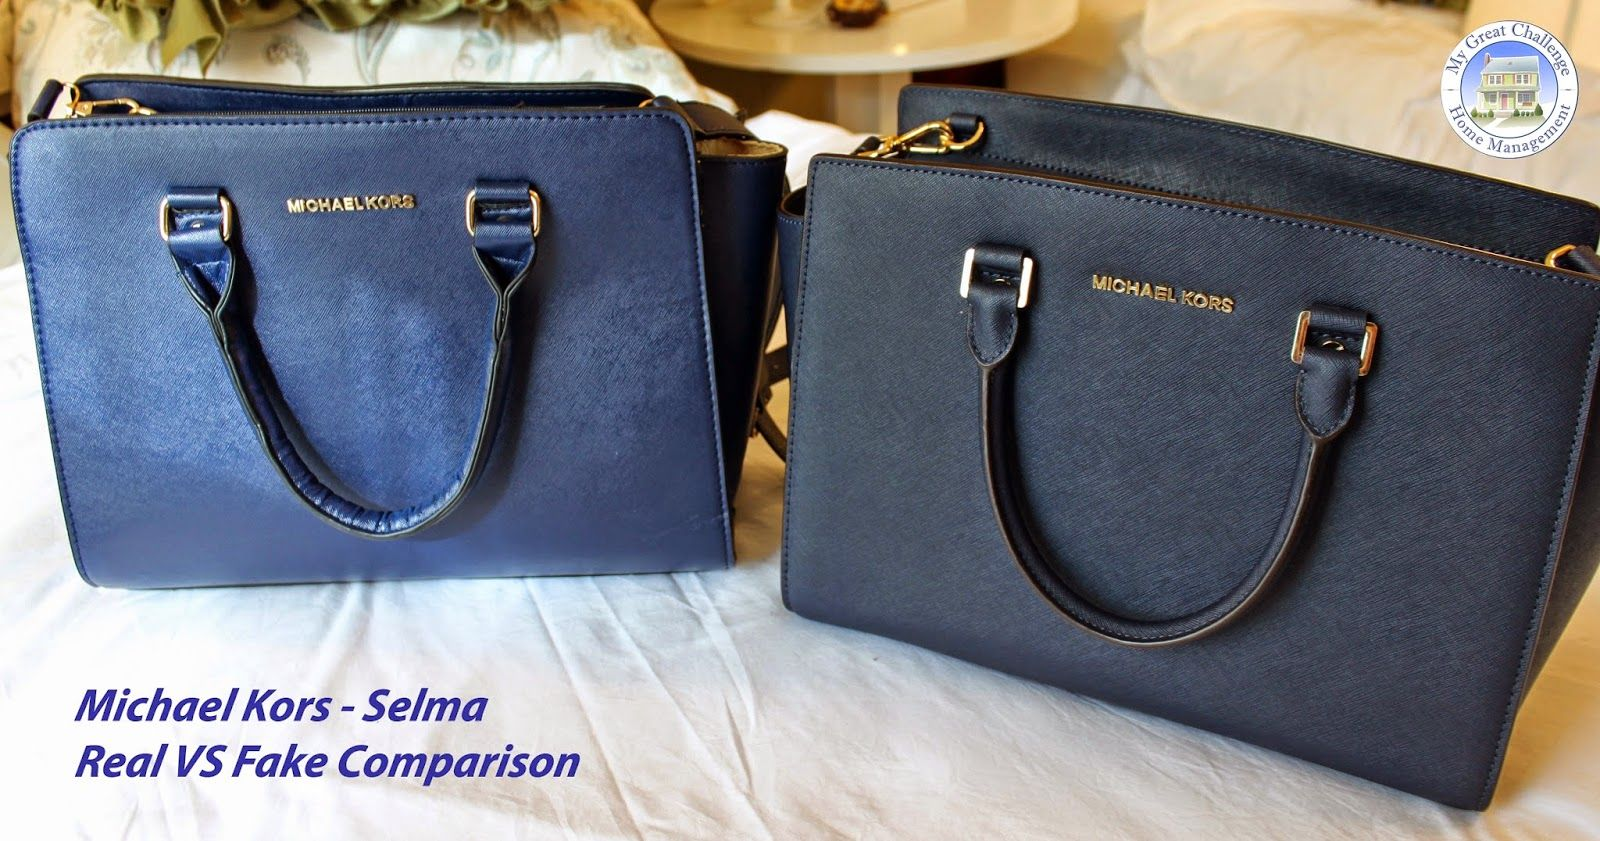 23cca01d24df Michael Kors Selma - Fake VS. Real Comparison | all about bags ...